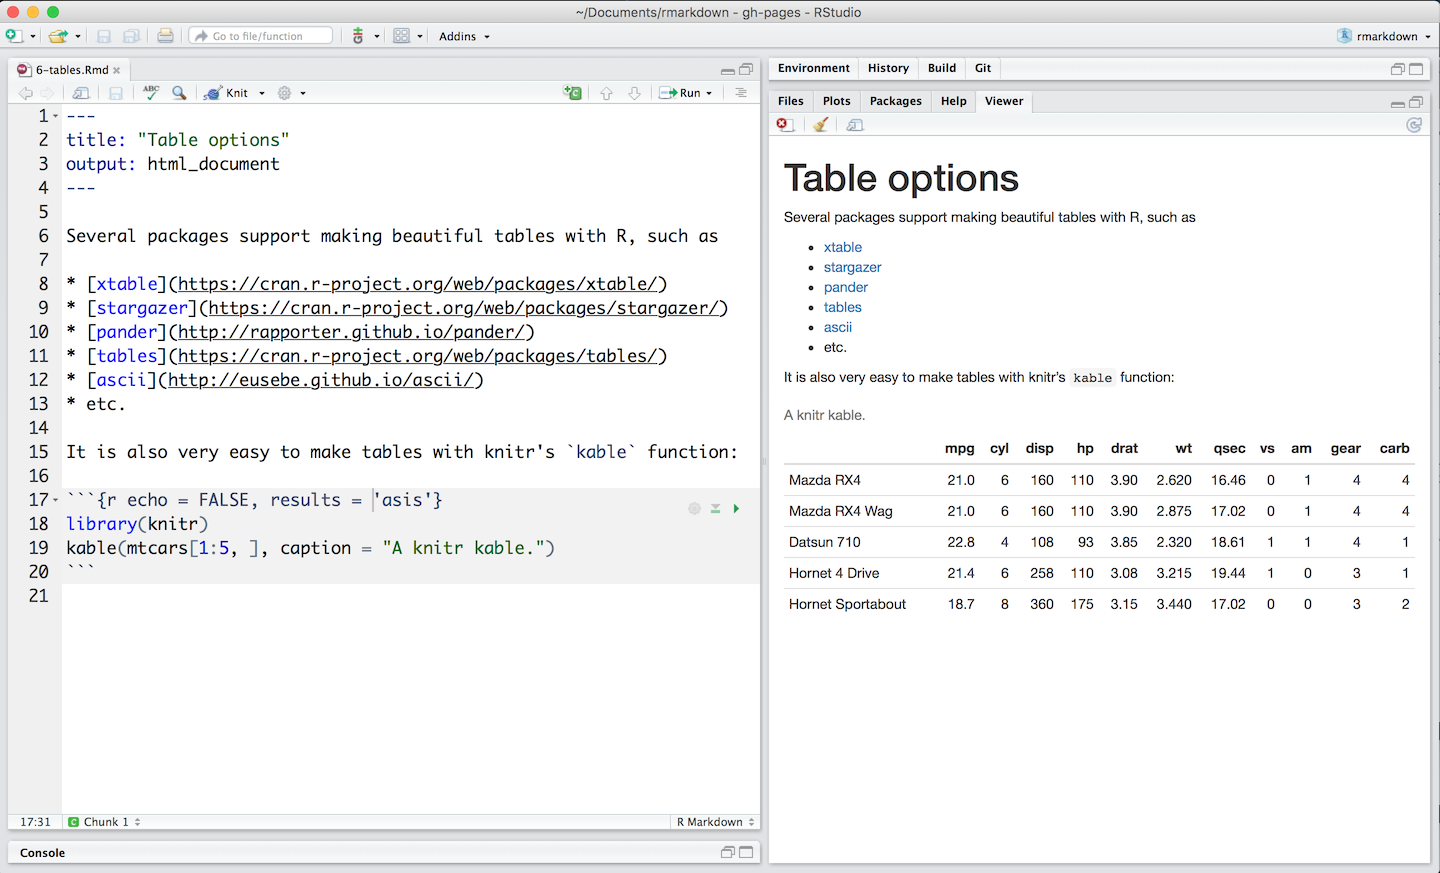 Tables for Table markdown